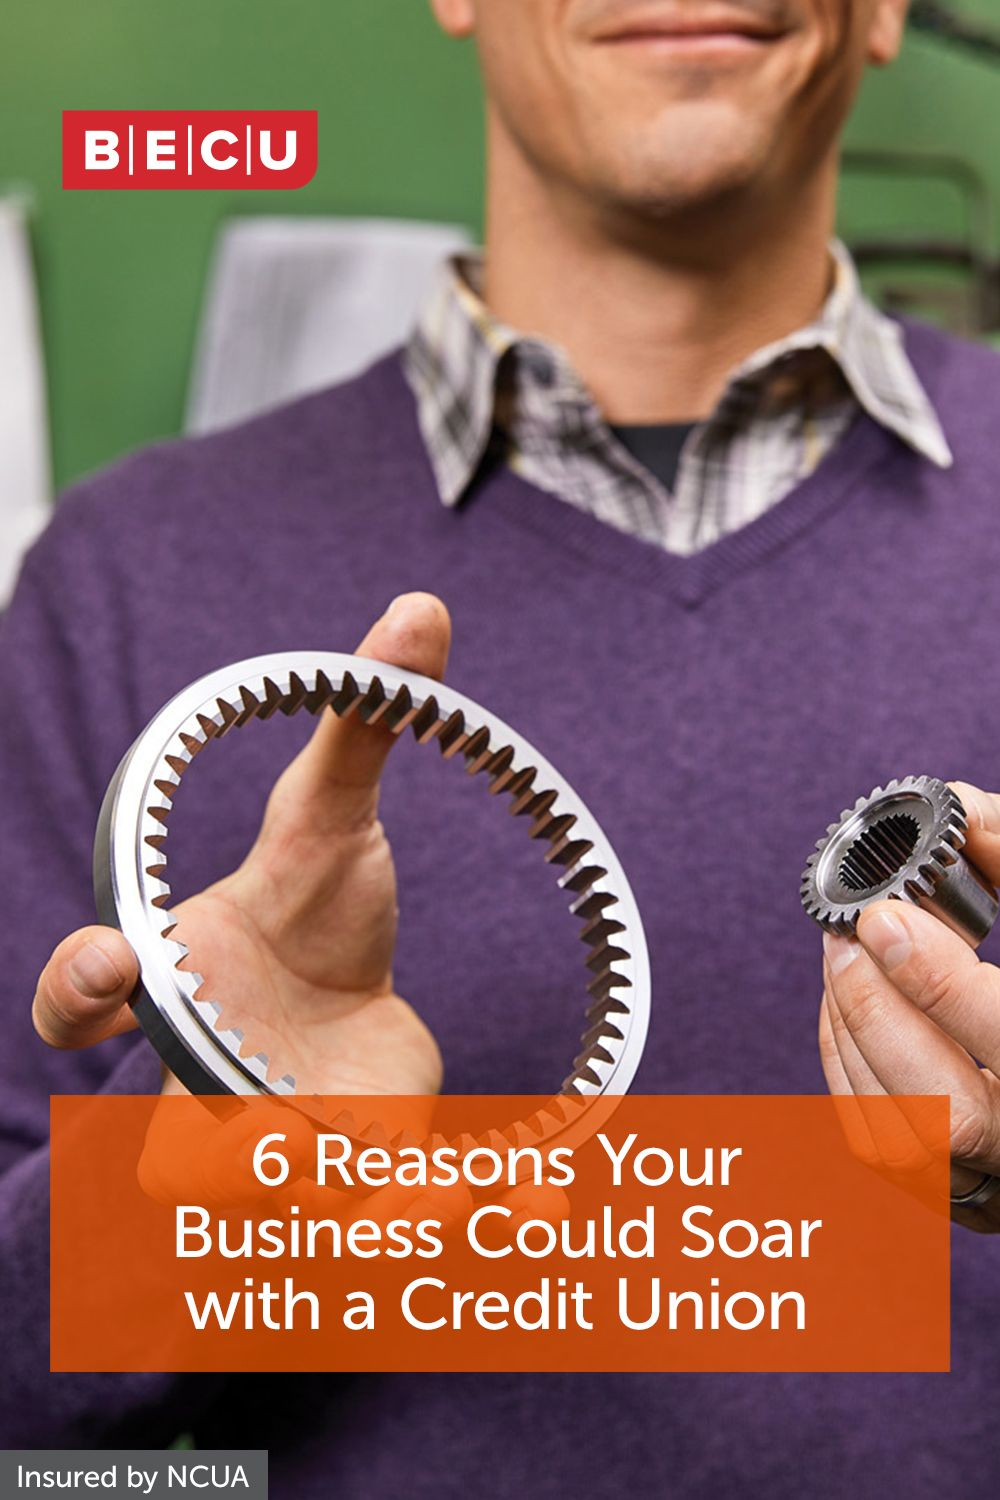 6 reasons your business could soar with a credit union